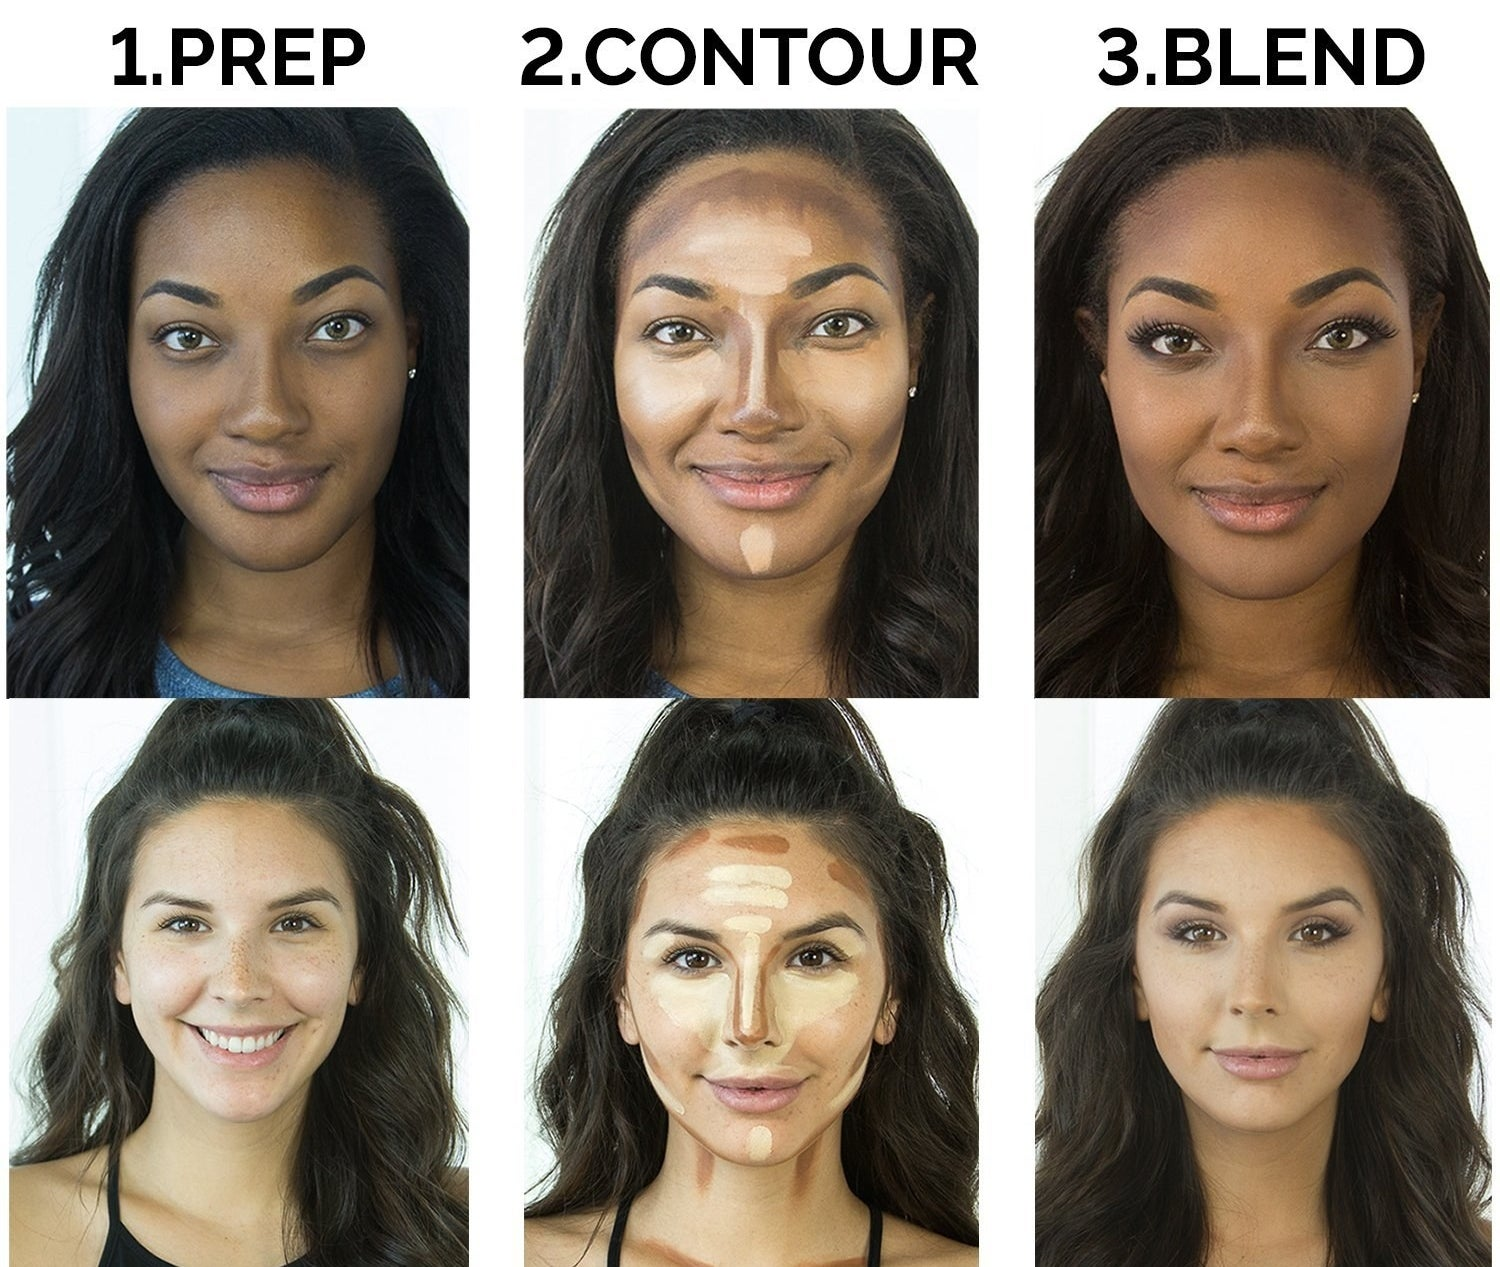 photos of two models before and after using the contour kit